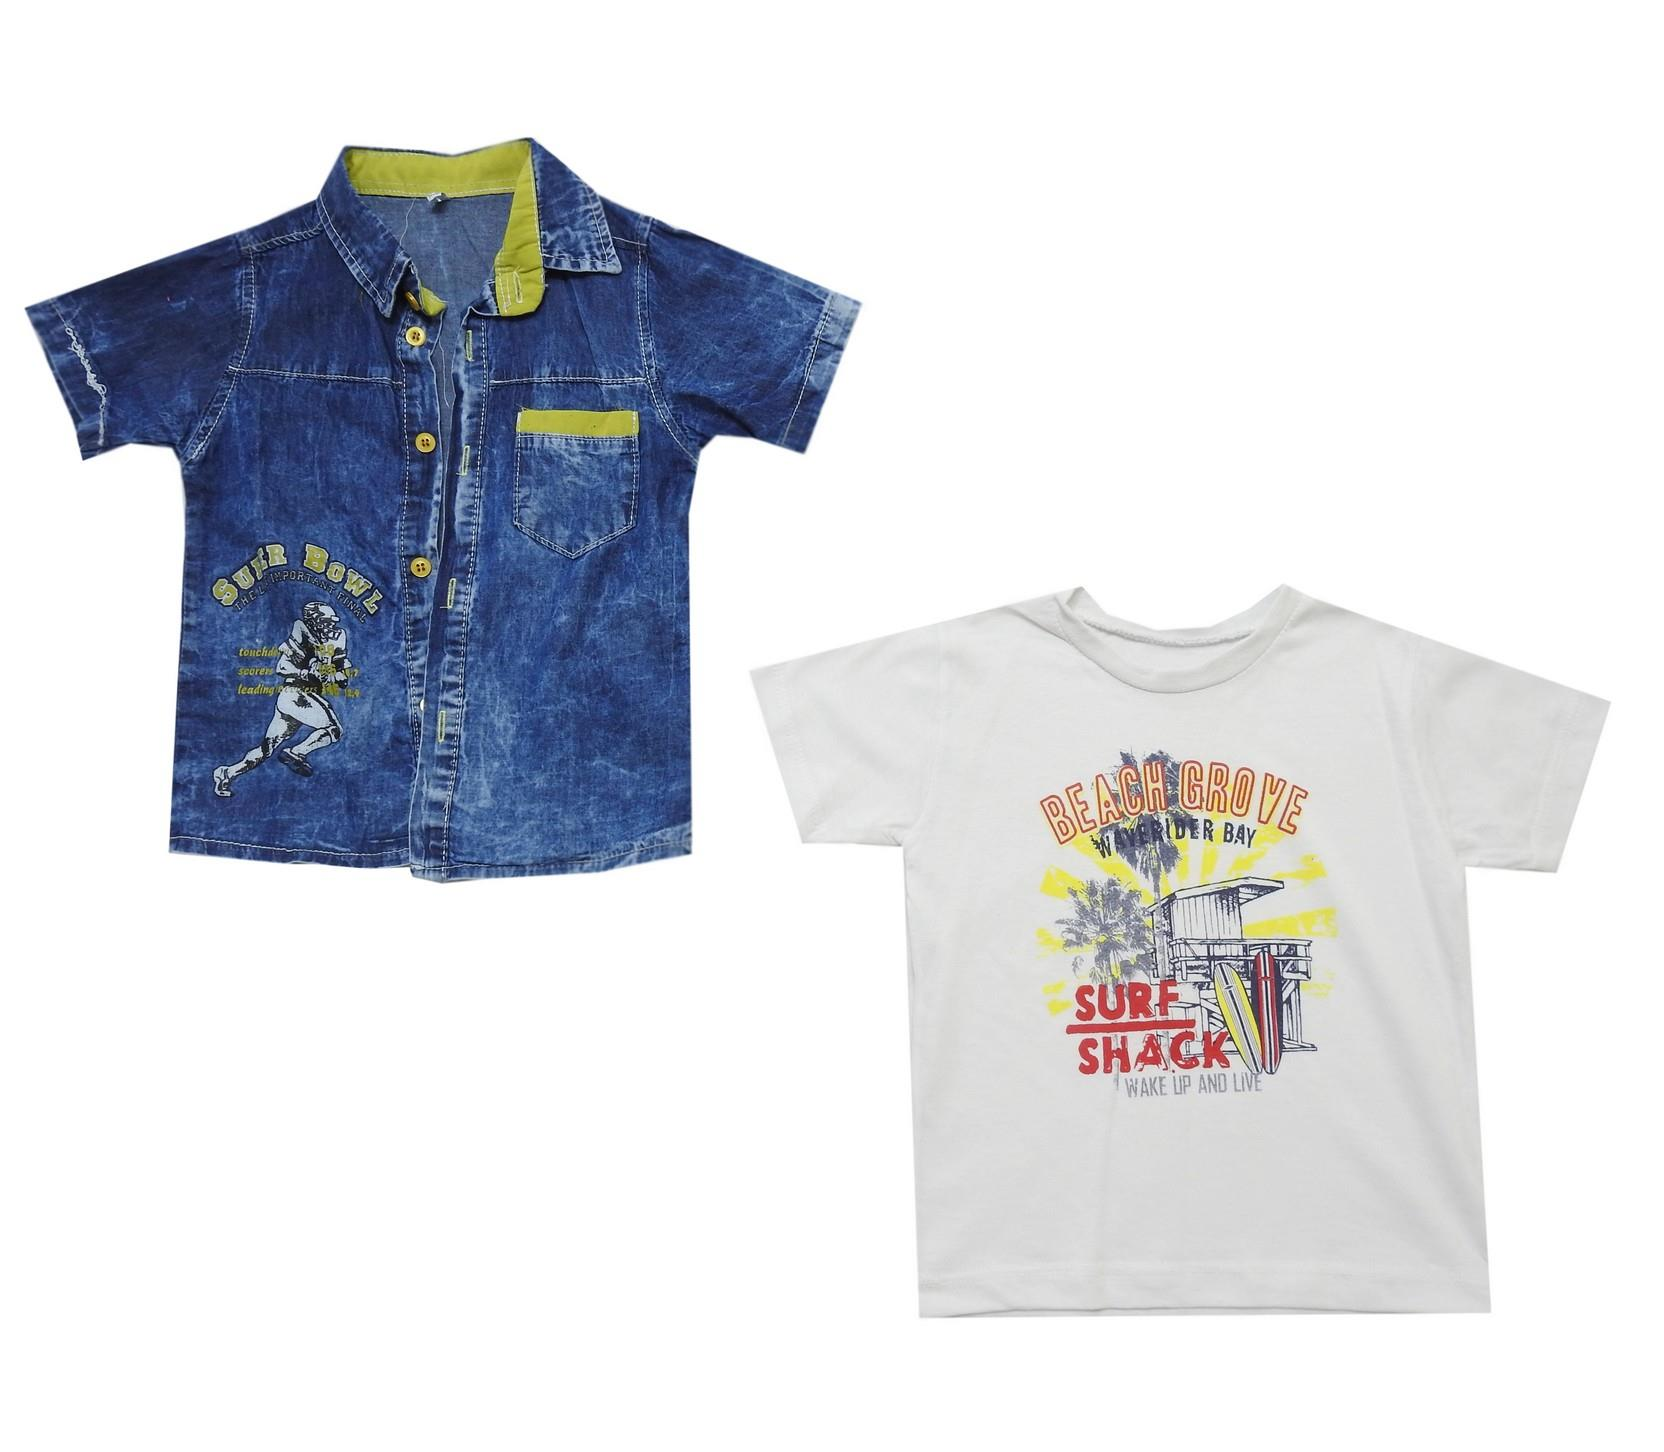 PRINTED DESIGN JEANS JACKET AND T-SHIRT DOUBLE SET FOR BOY (1-2-3-4 AGE)